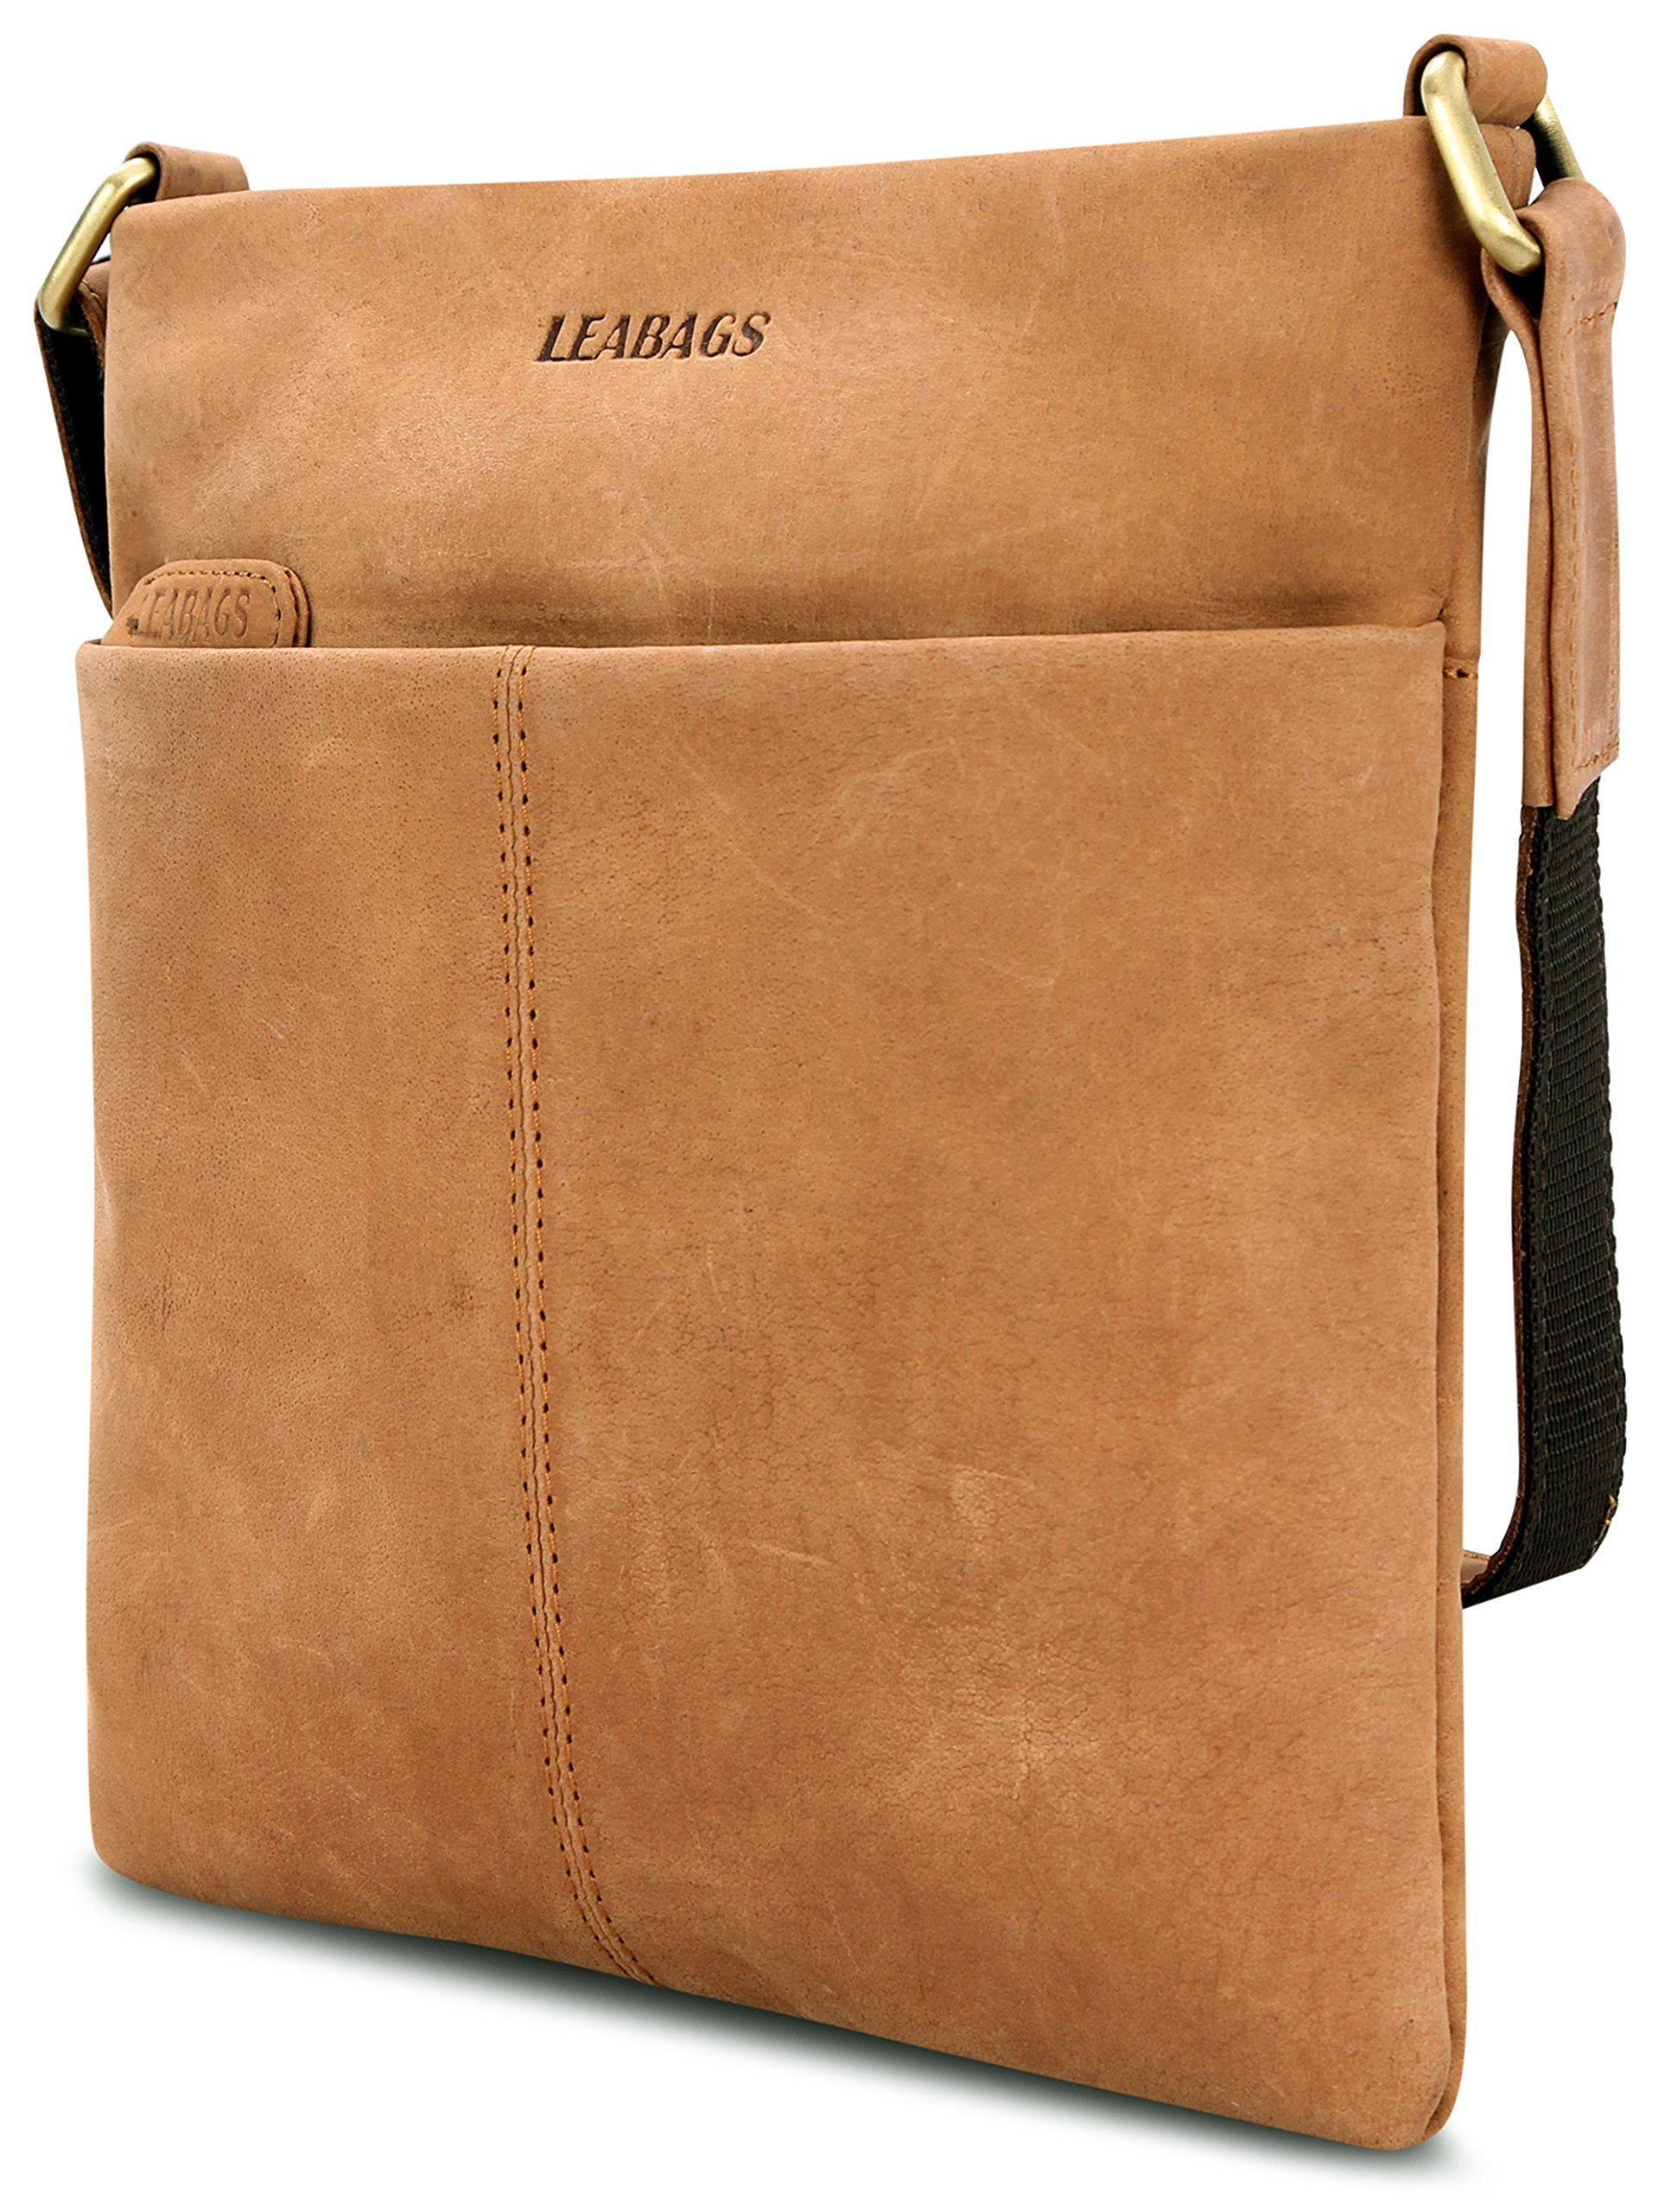 LEABAGS Seattle genuine buffalo leather crossbody bag in vintage style - Brown by LEABAGS (Image #4)